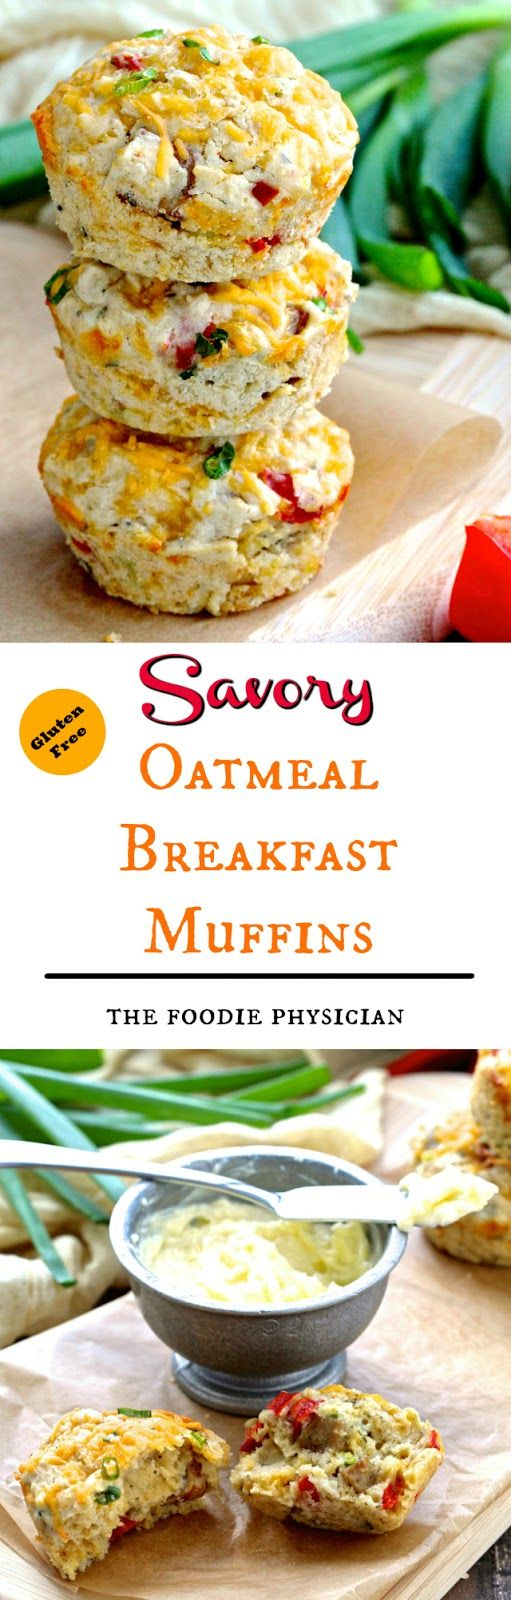 Savory Oatmeal Breakfast Muffins. Enjoy all of the flavors of a leisurely Sunday brunch baked into a gluten free muffin! | @foodiephysician